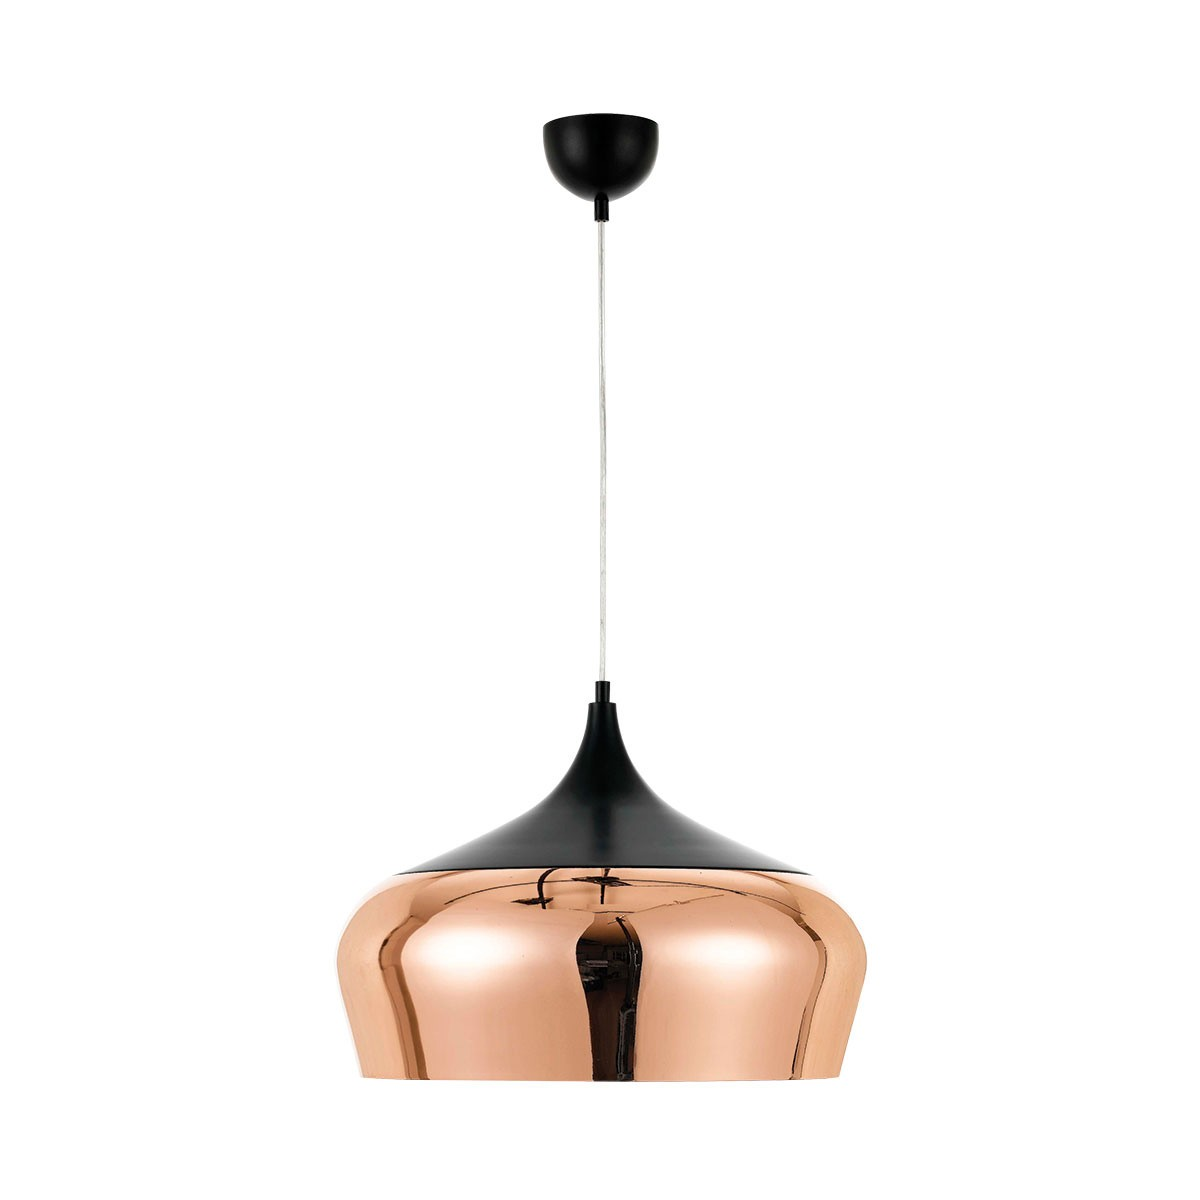 Polk Metal Pendant Light, Large, Copper / Black